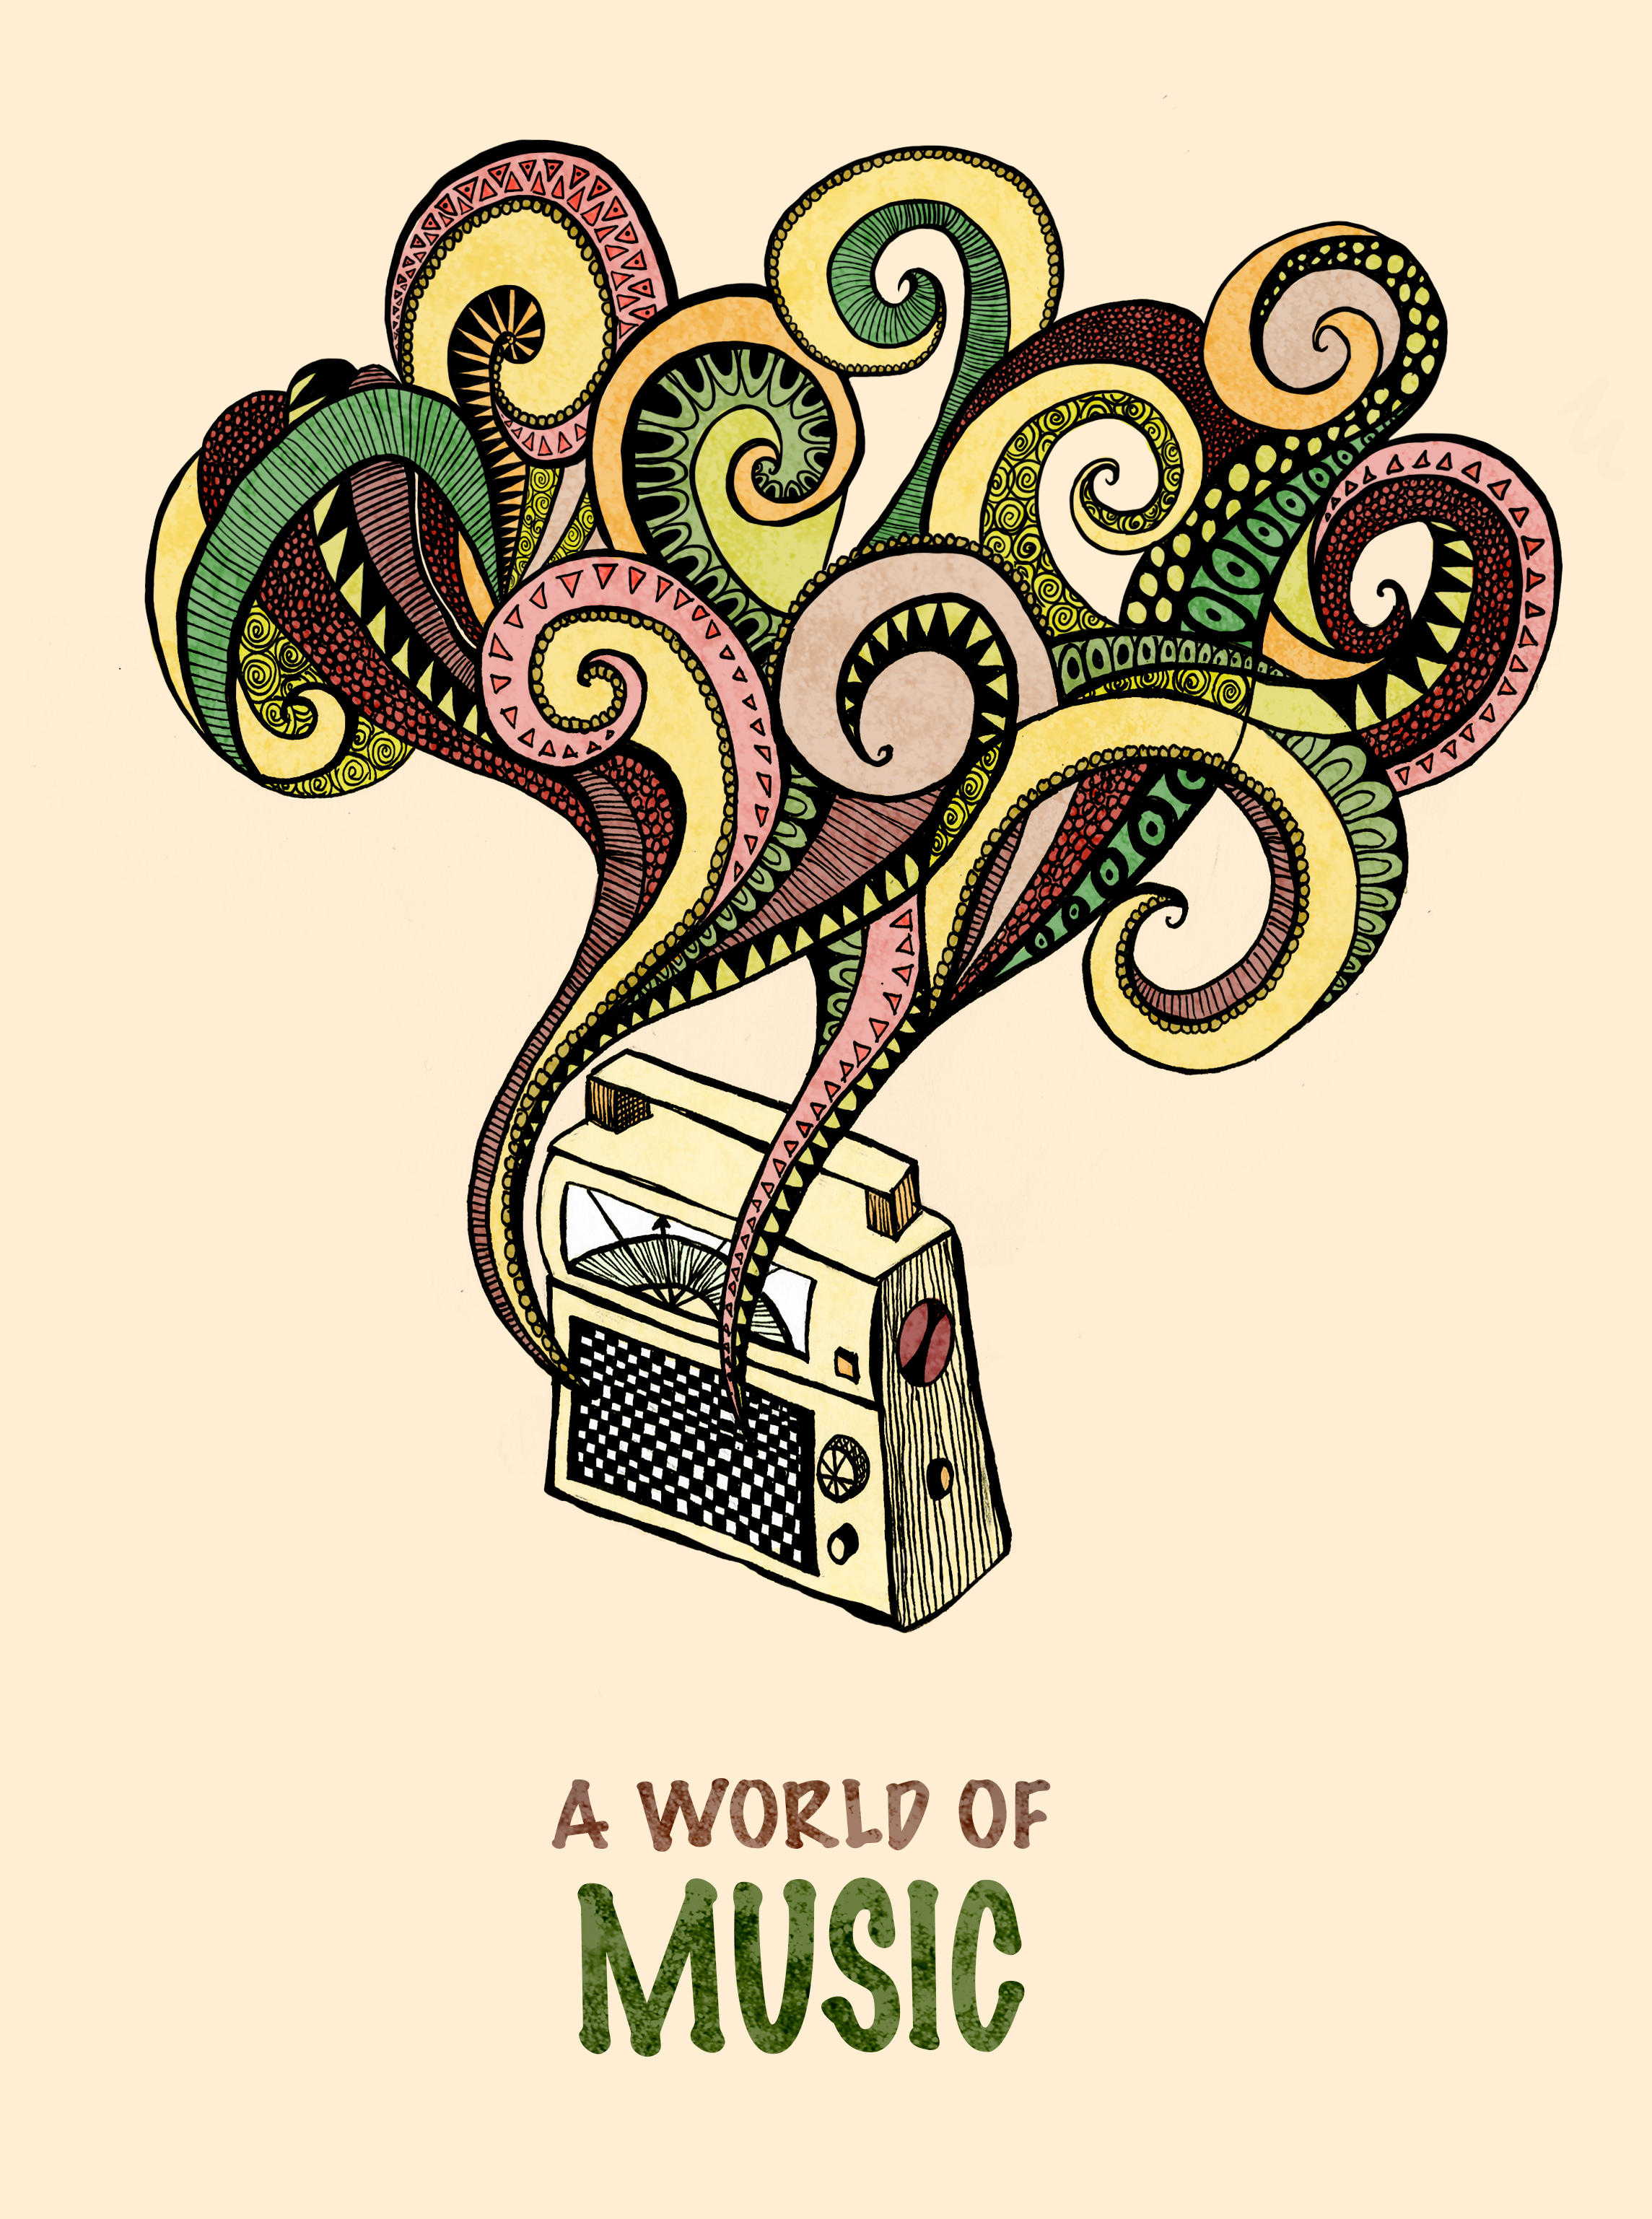 A world of music – in color!